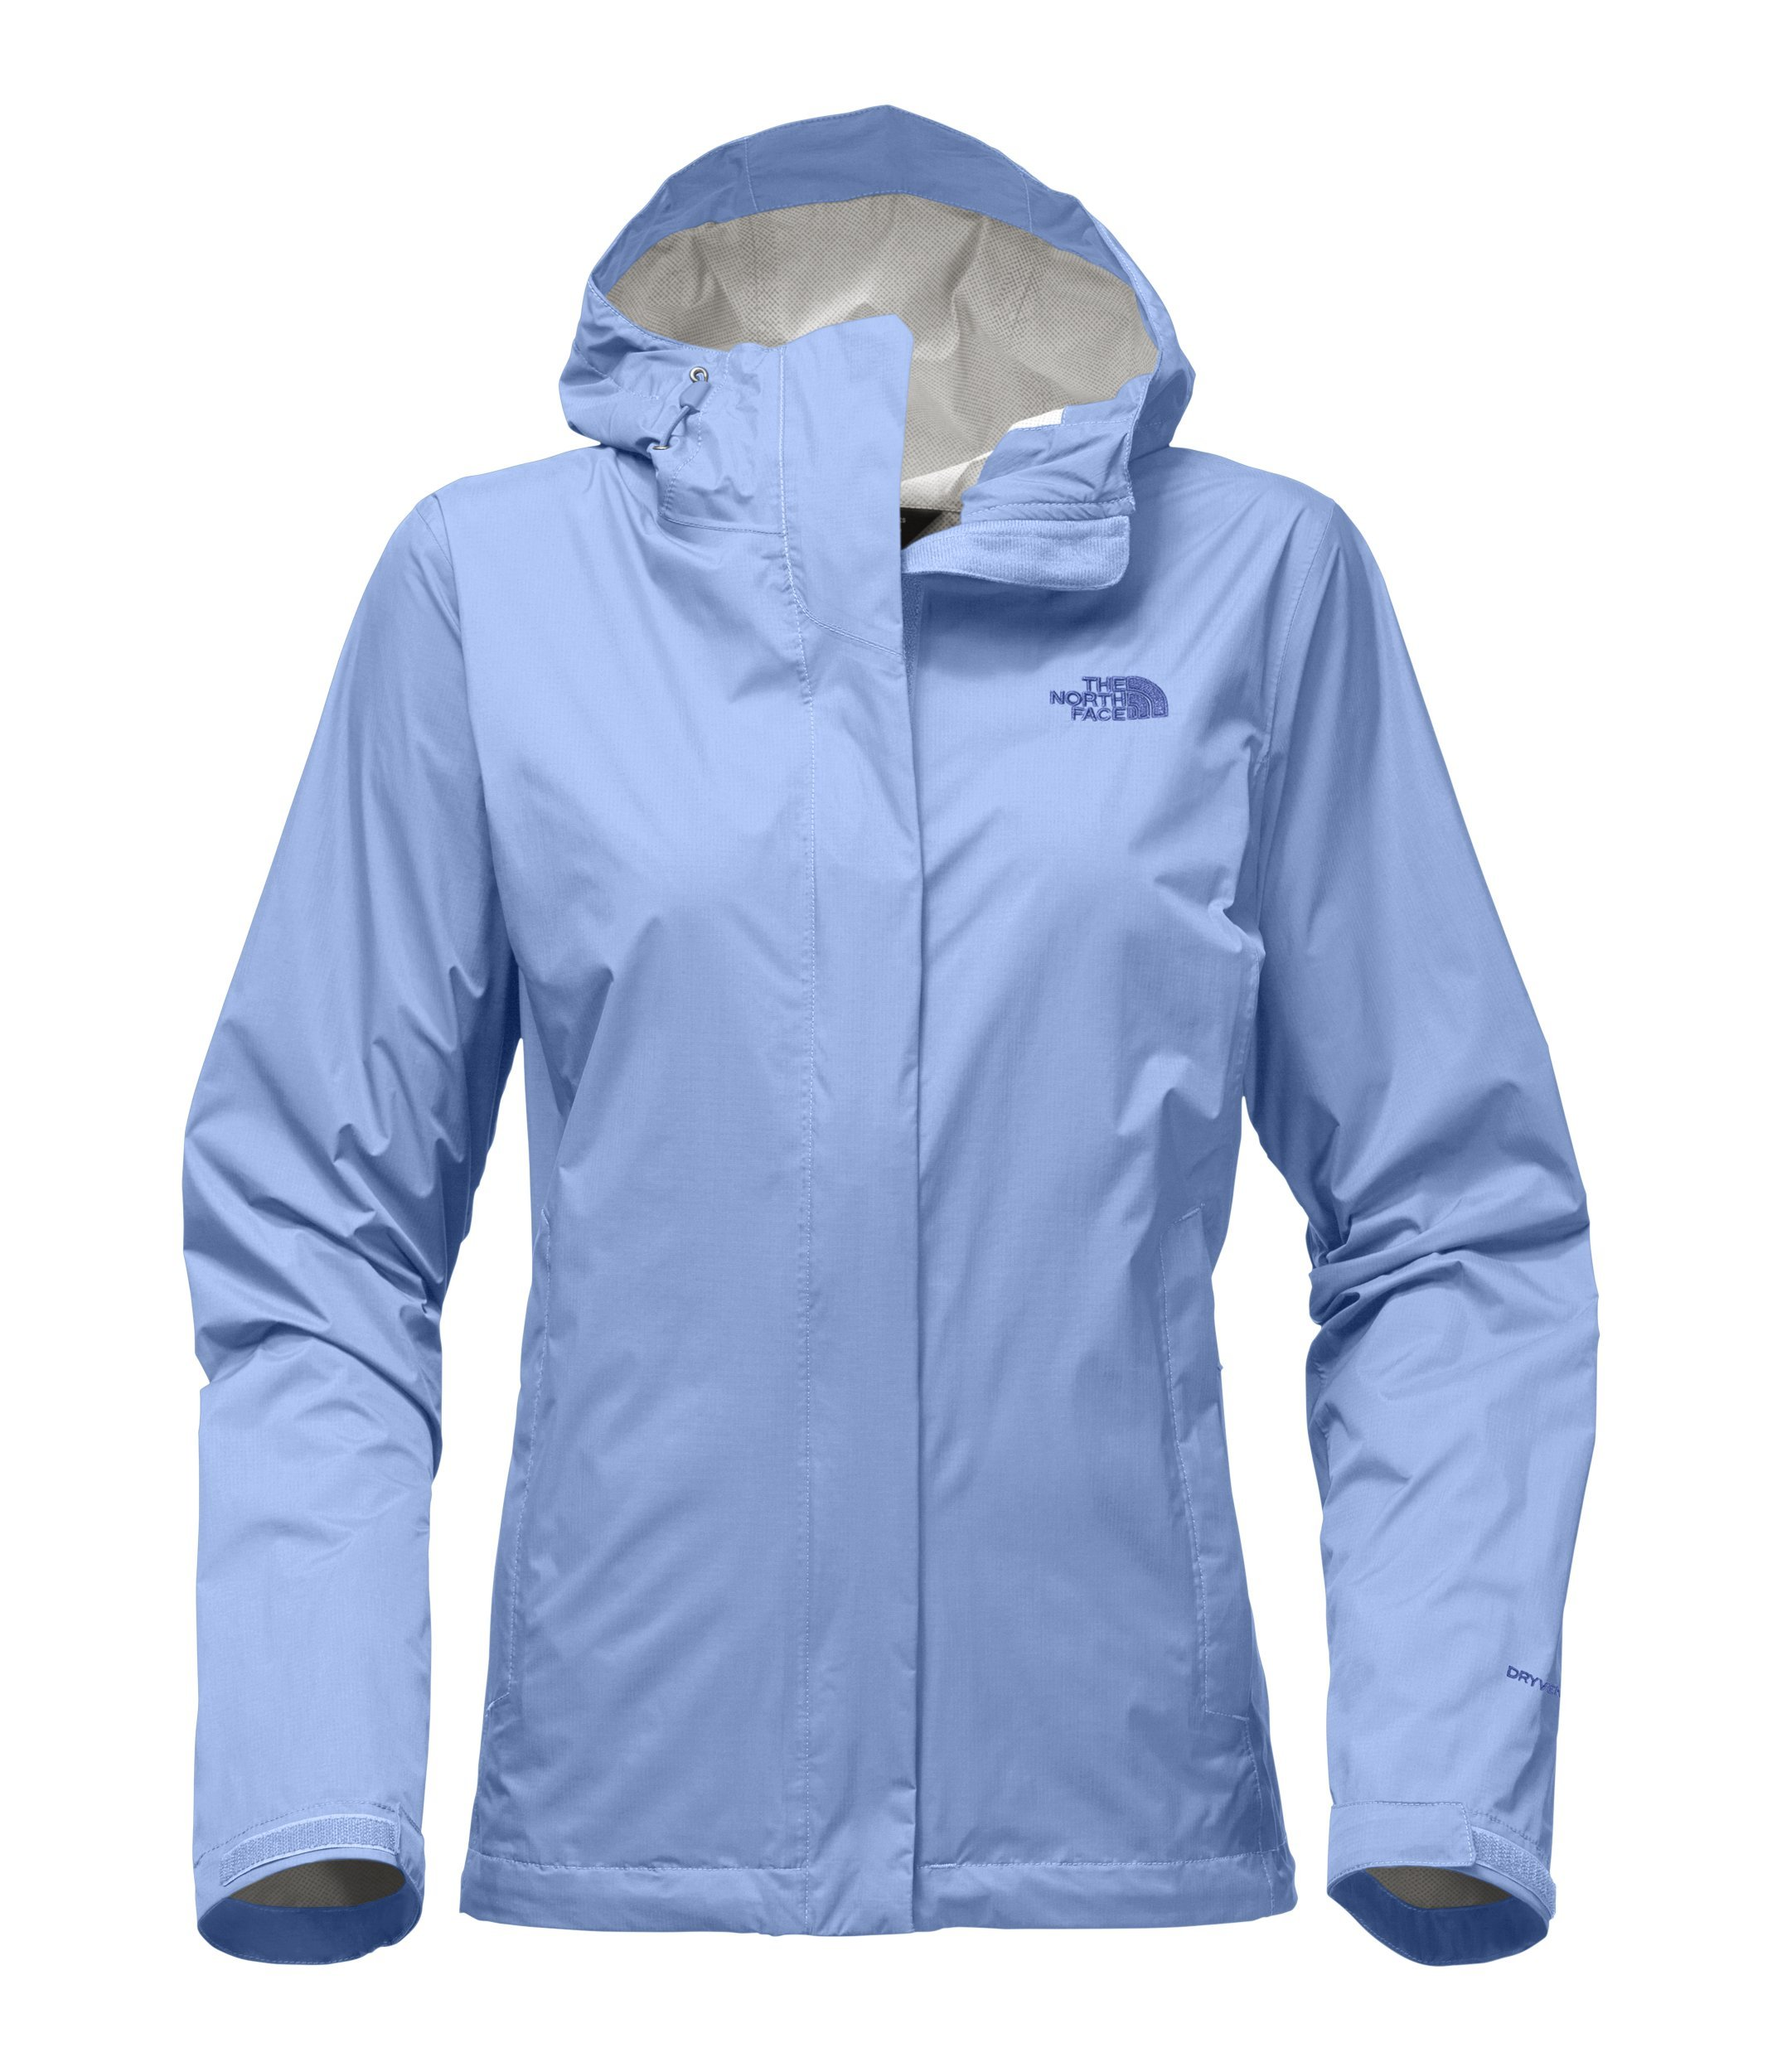 The North Face Women's Venture 2 Jacket Collar Blue - M